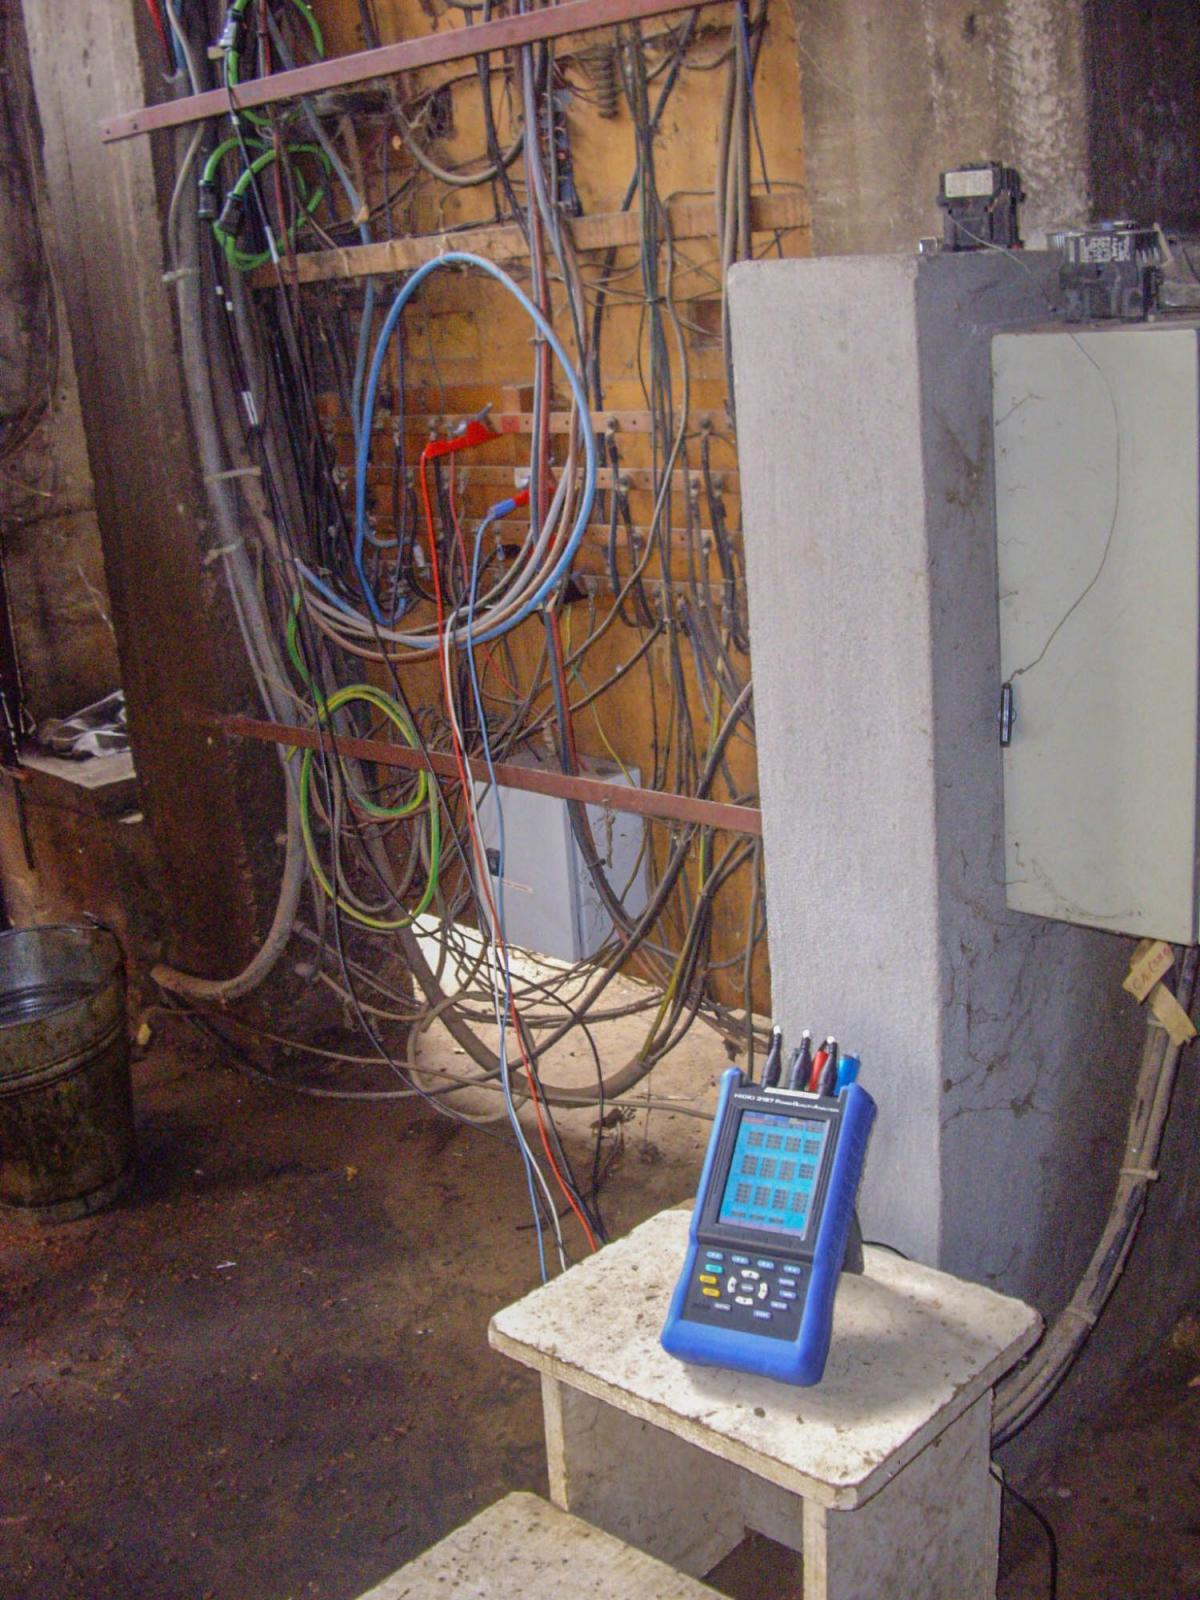 Emi For The Electrical Engineer House Wiring Strategy Stage 1 An Hioki Power Analyzer In Use On Site During Ee Assessment Being Conducted Project Trip